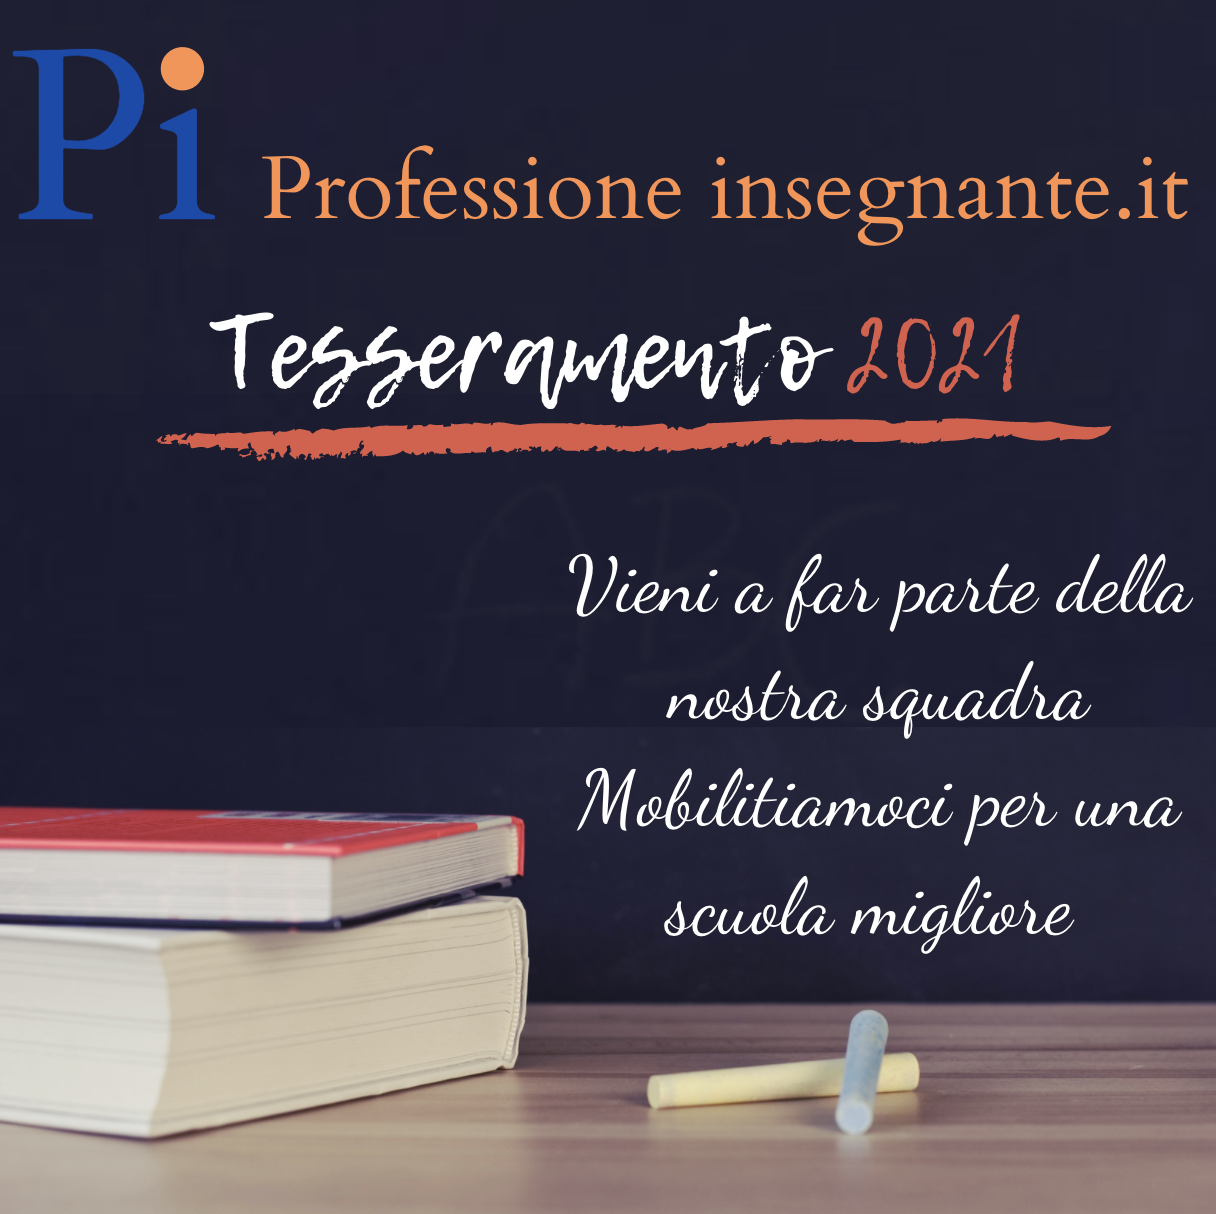 http://www.professioneinsegnante.it/wp-content/uploads/2021/02/Schermata-2021-02-14-alle-17.20.12.png